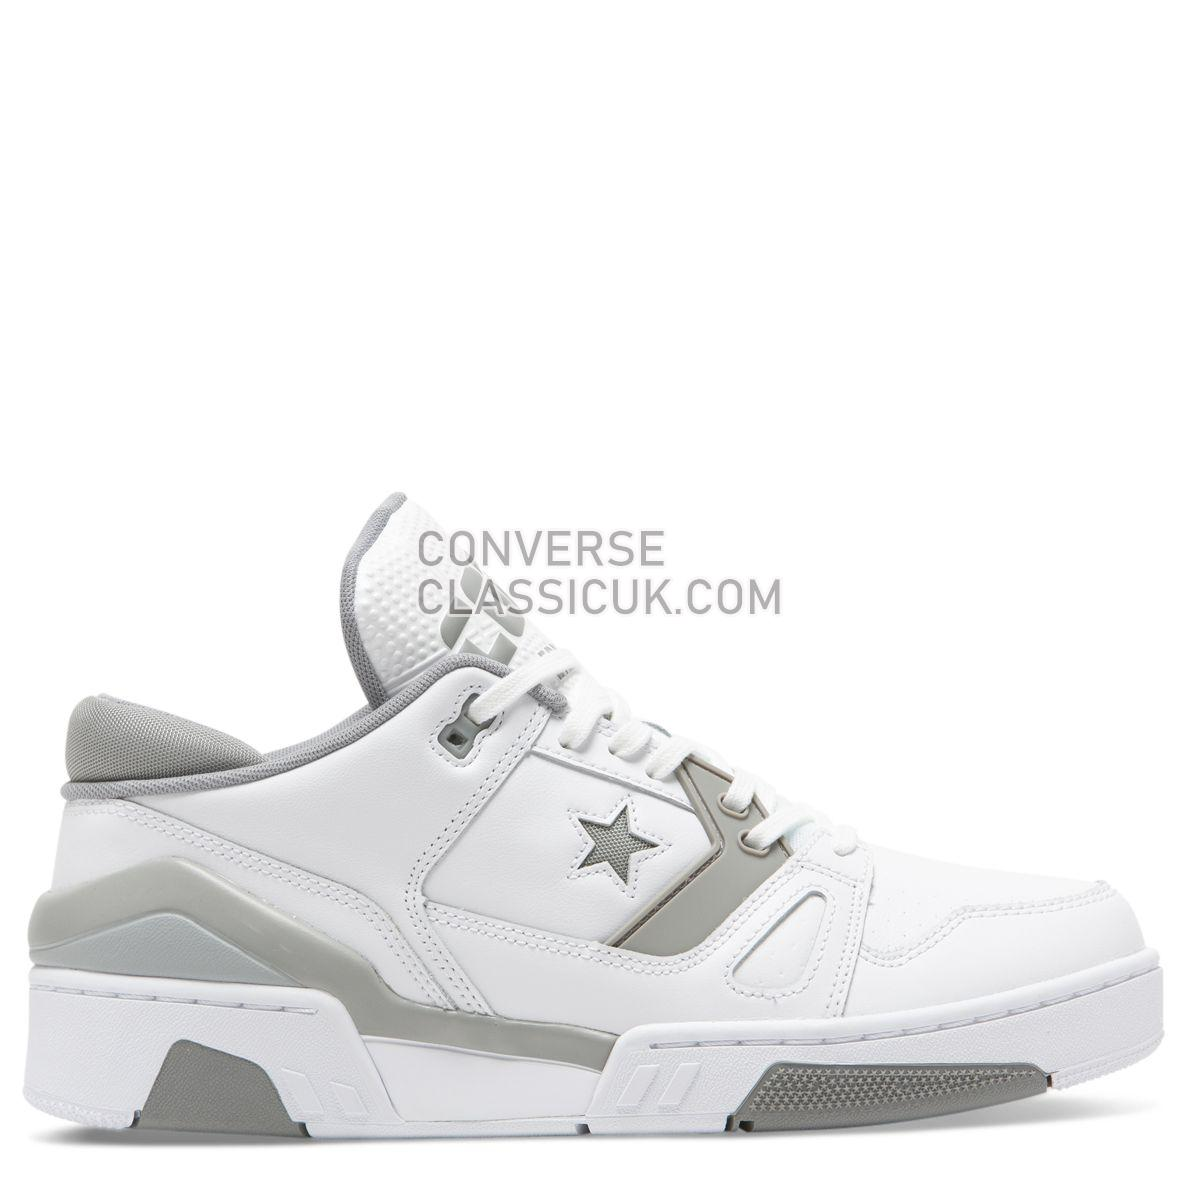 Converse ERX 260 Archive Alive Low Top White/Dolphin Mens 165044 White/Dolphin/Wolf Grey Shoes